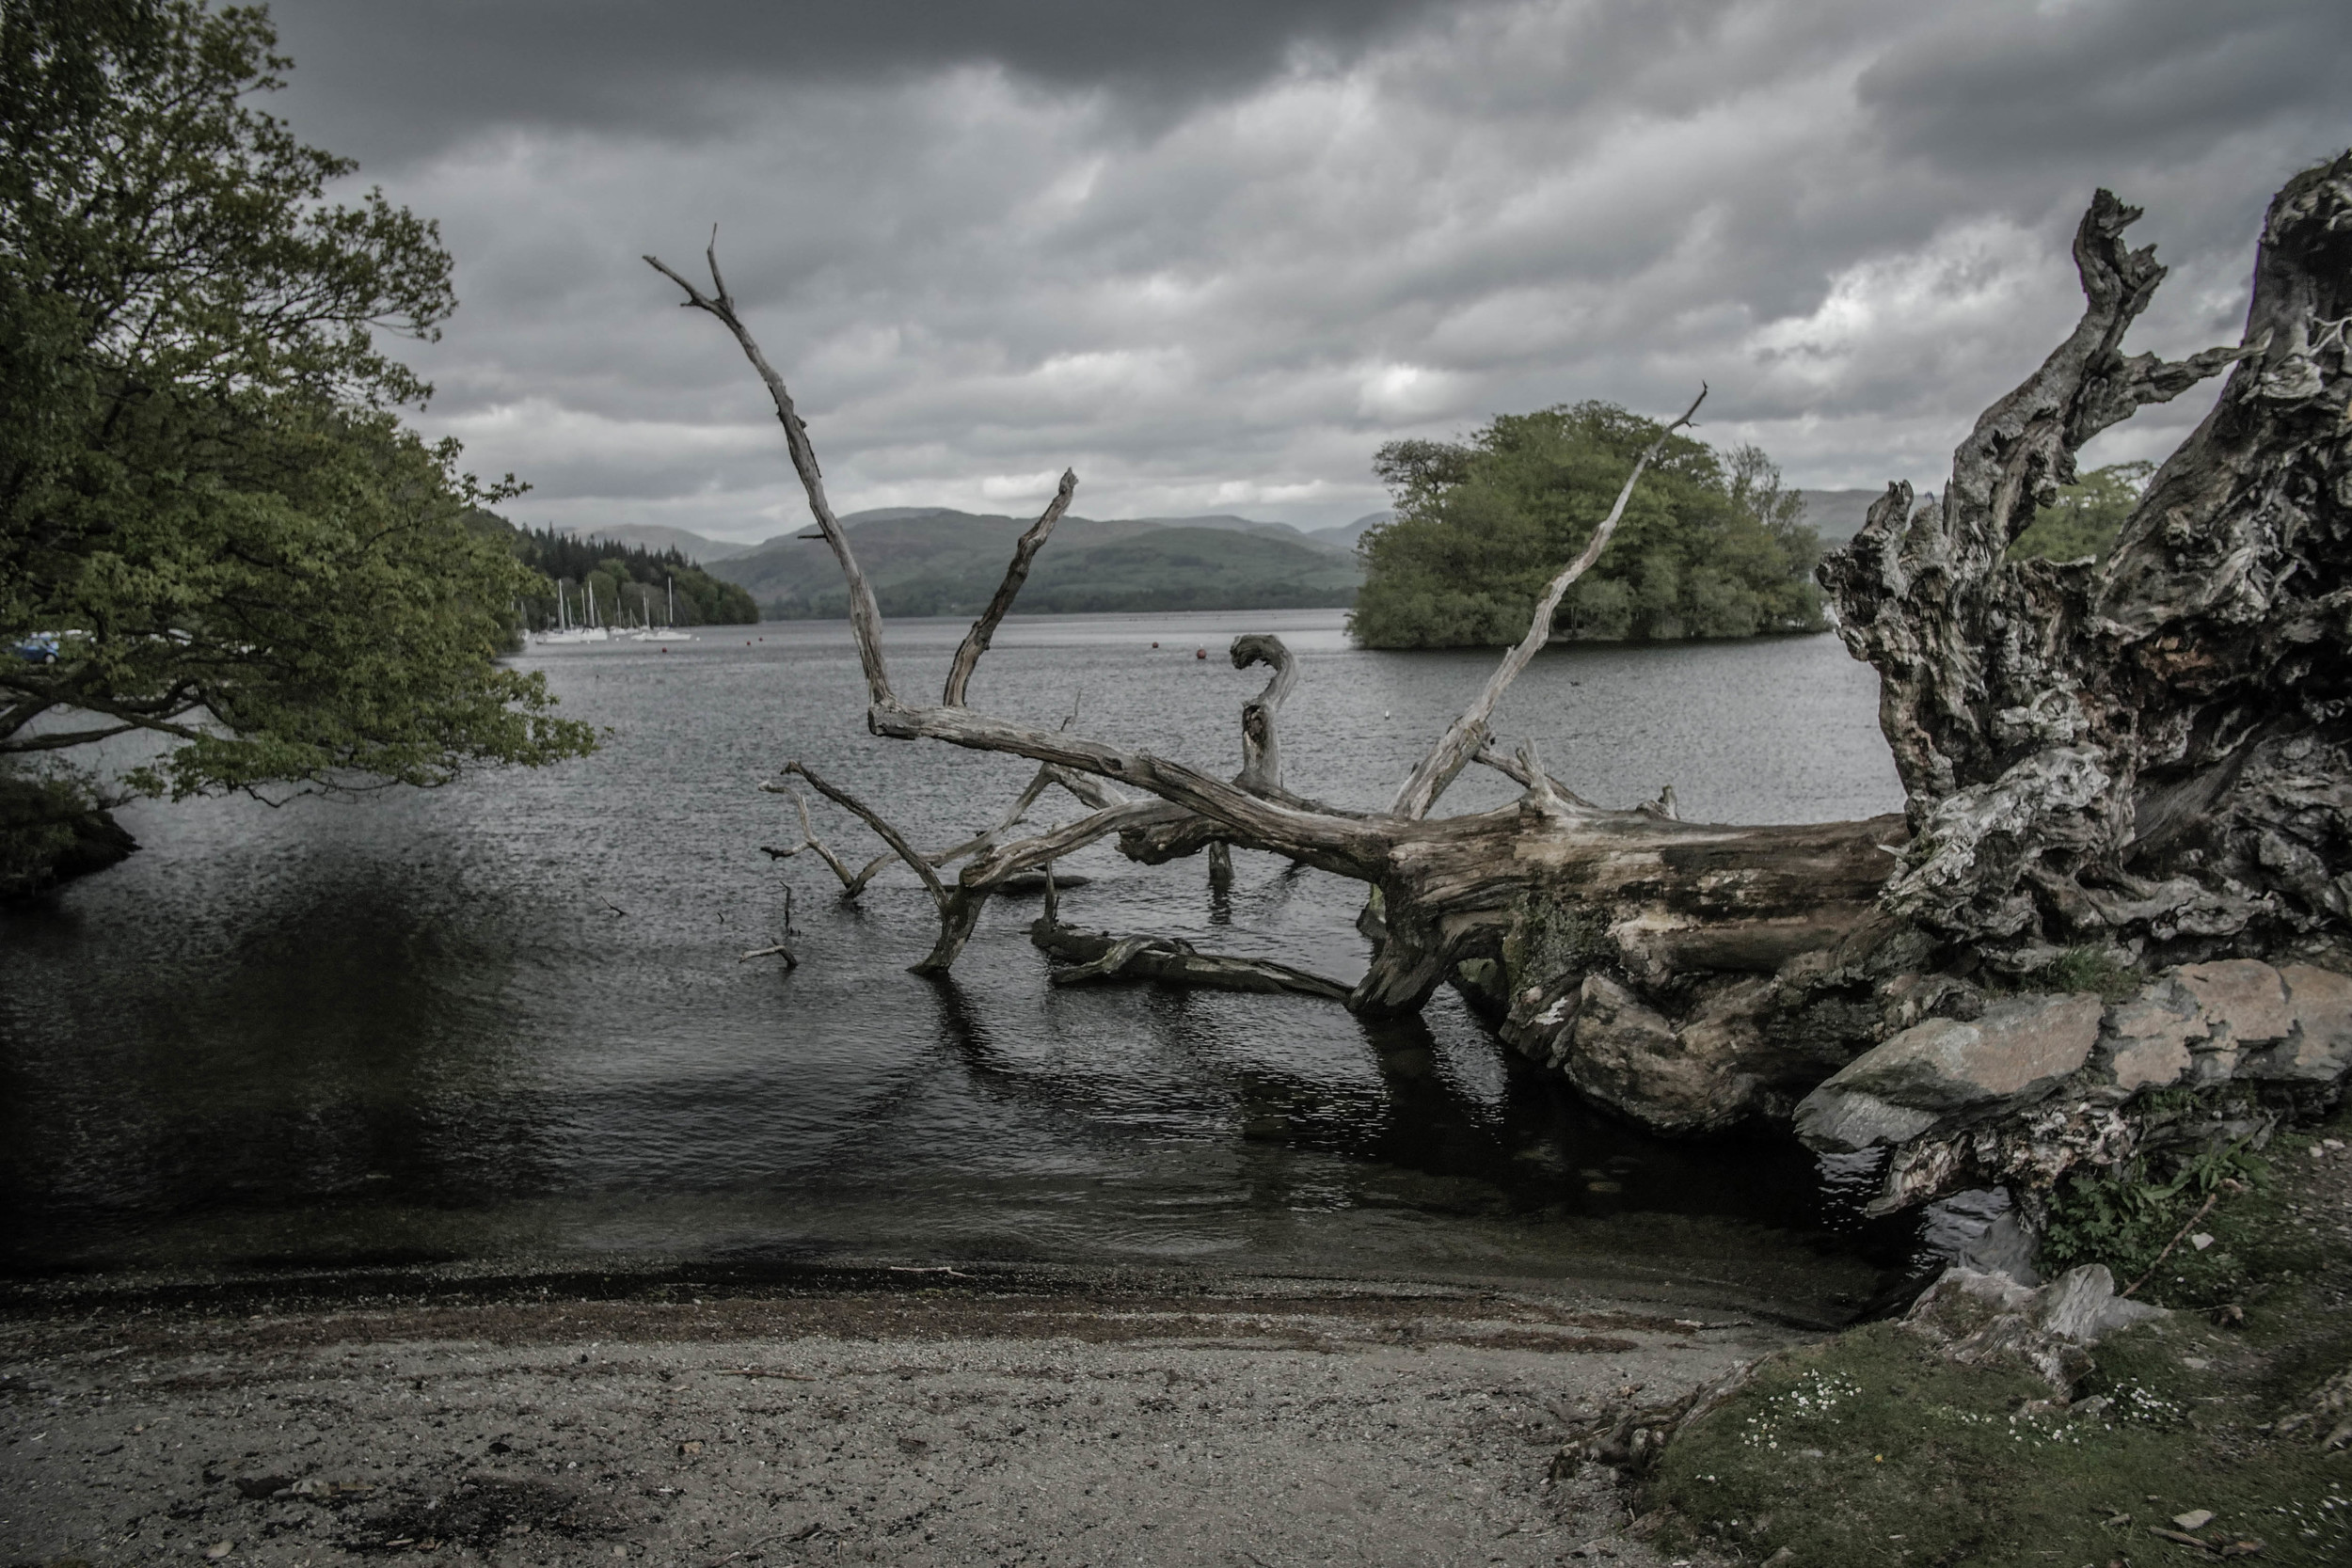 Lots of fallen trees following a storm. This big one ended up diving intothe lake - agloomy yetcool atmosphere.